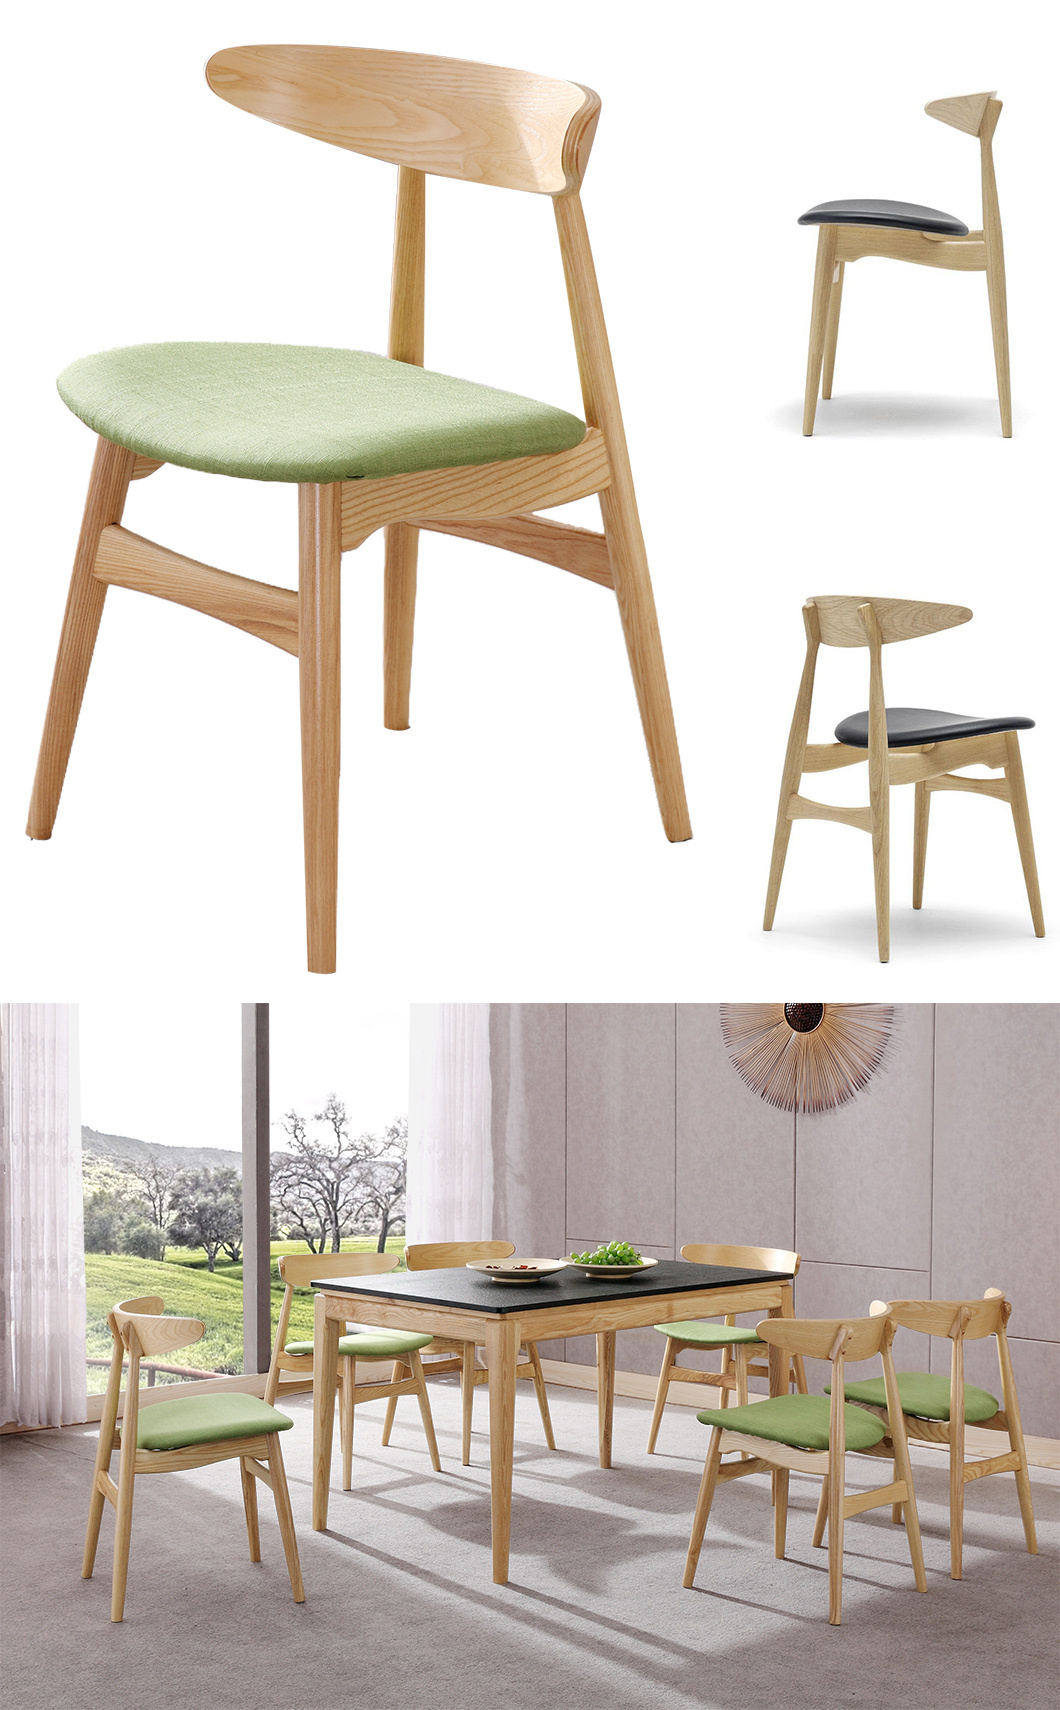 Modern Wood Home Furniture Leisure Restaurant Chair for Dining Room